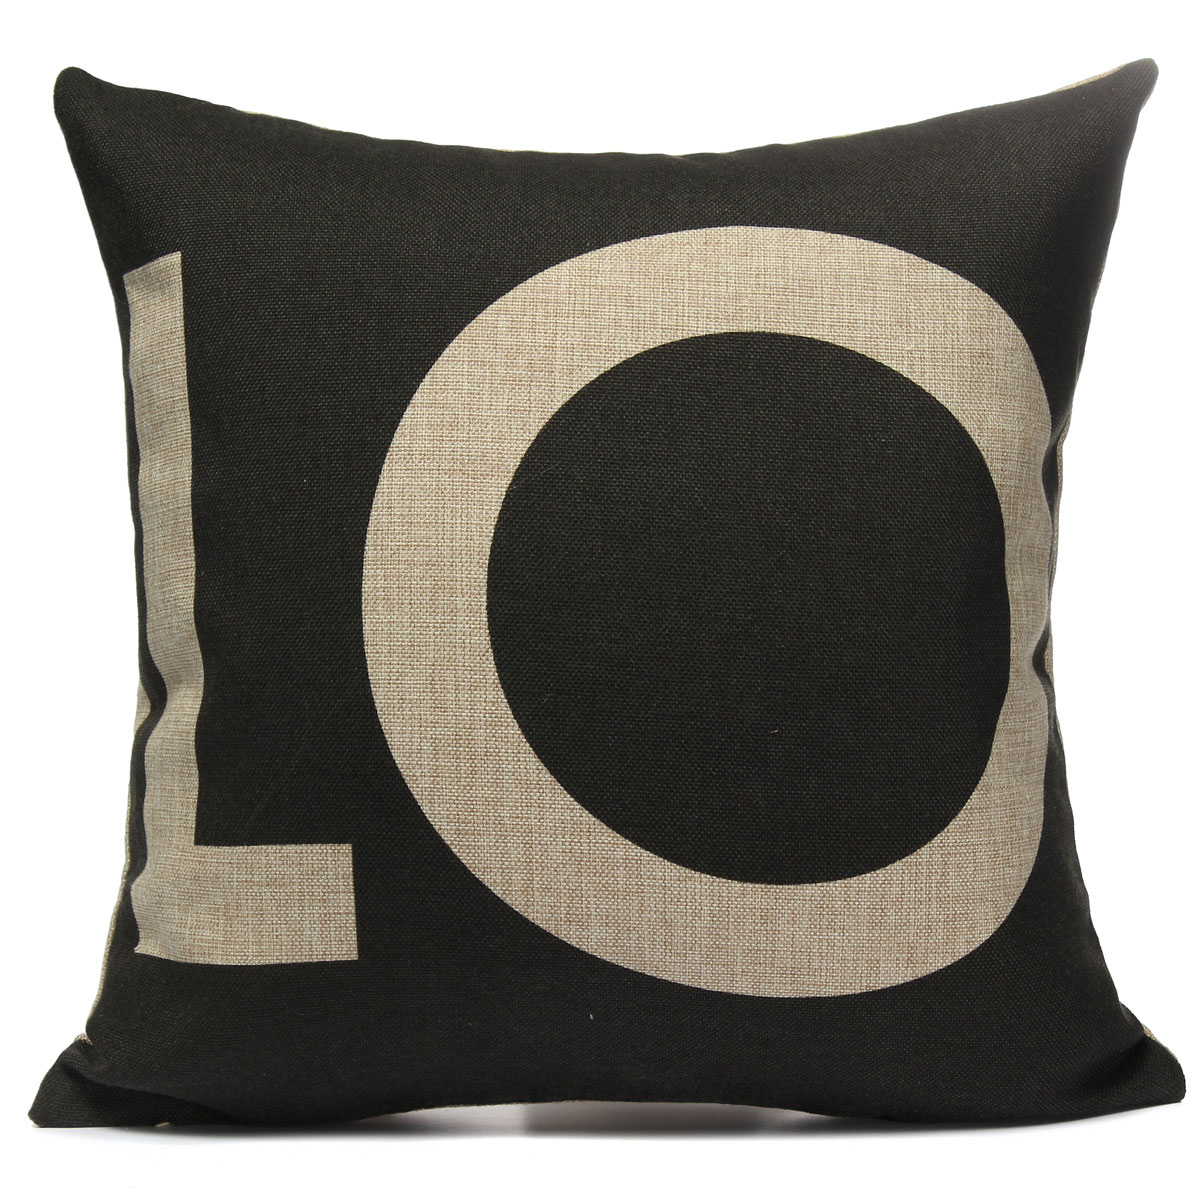 Cotton Linen LOVE Throw Pillow Case Car Cushion Cover Home Decor Valentine s Day